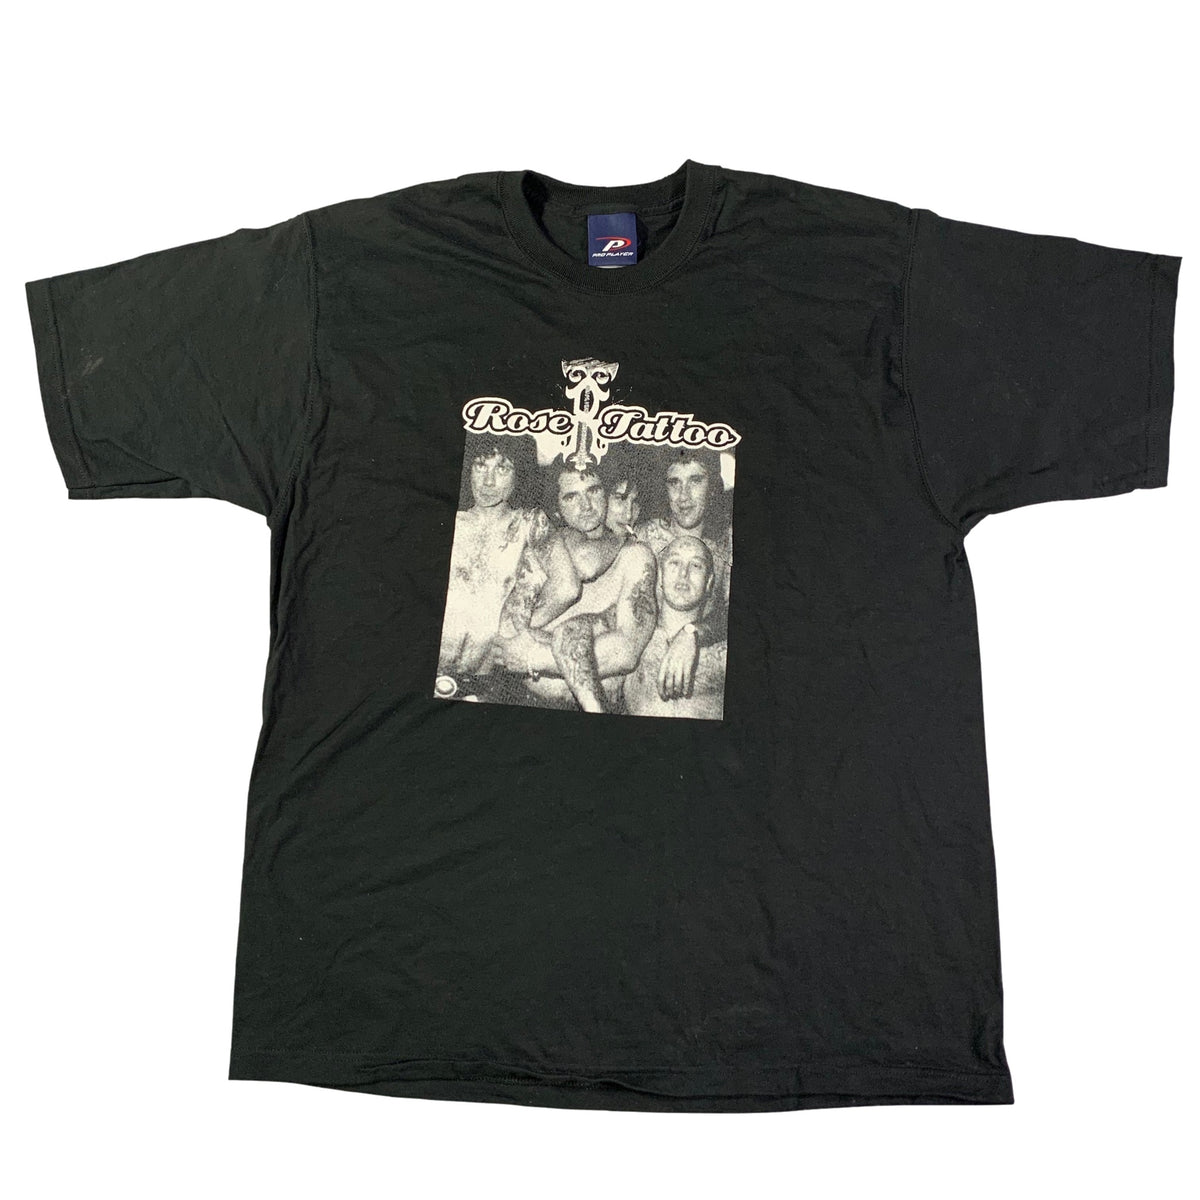 "Vintage '90s Rose Tattoo ""Group Photo"" T-Shirt"